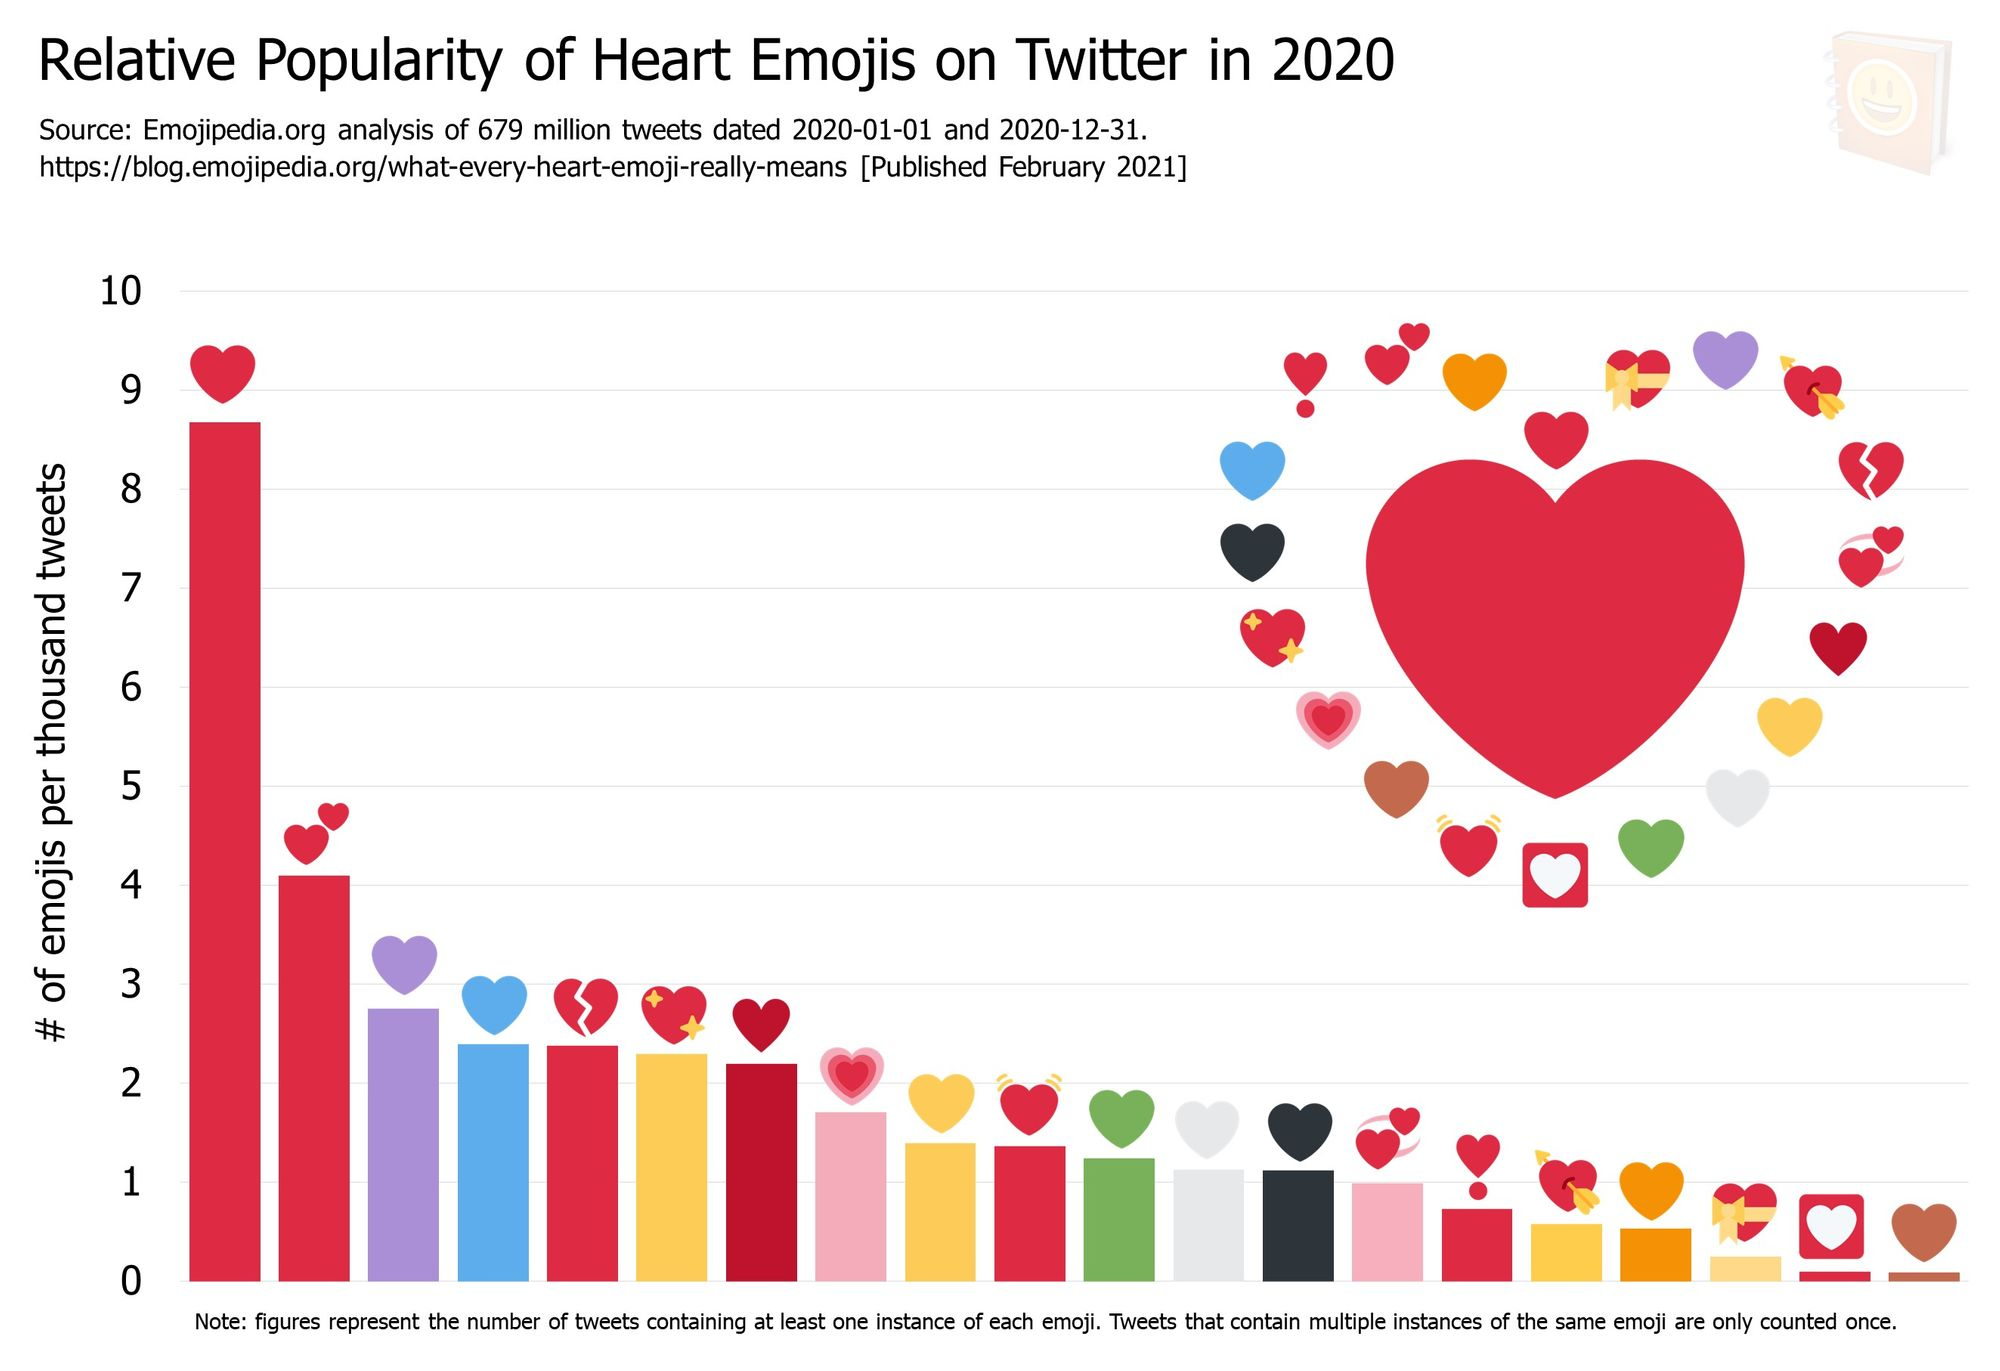 Emojipedia-Blog---What-Every-Heart-Emoji-Really-Means---Relative-Popularity-of-Heart-Emojis-on-Twitter-in-2020